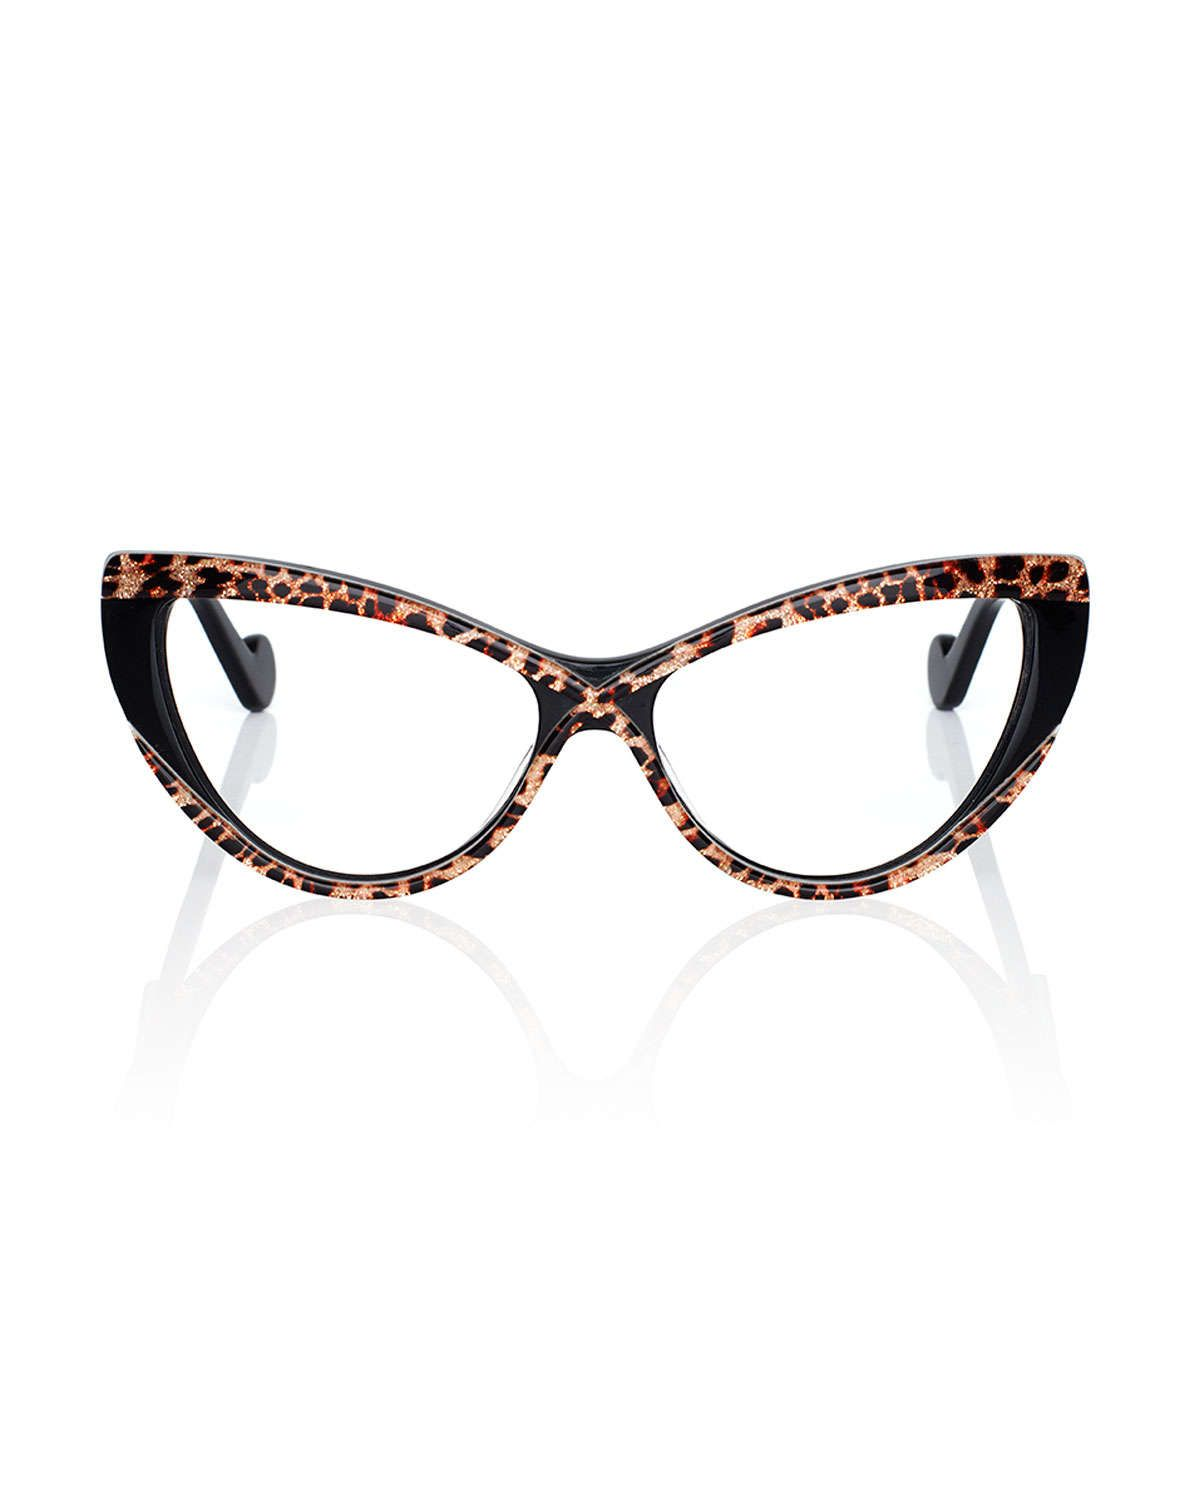 Luscious Cat-Eye Fashion Glasses, Gold/Leopard